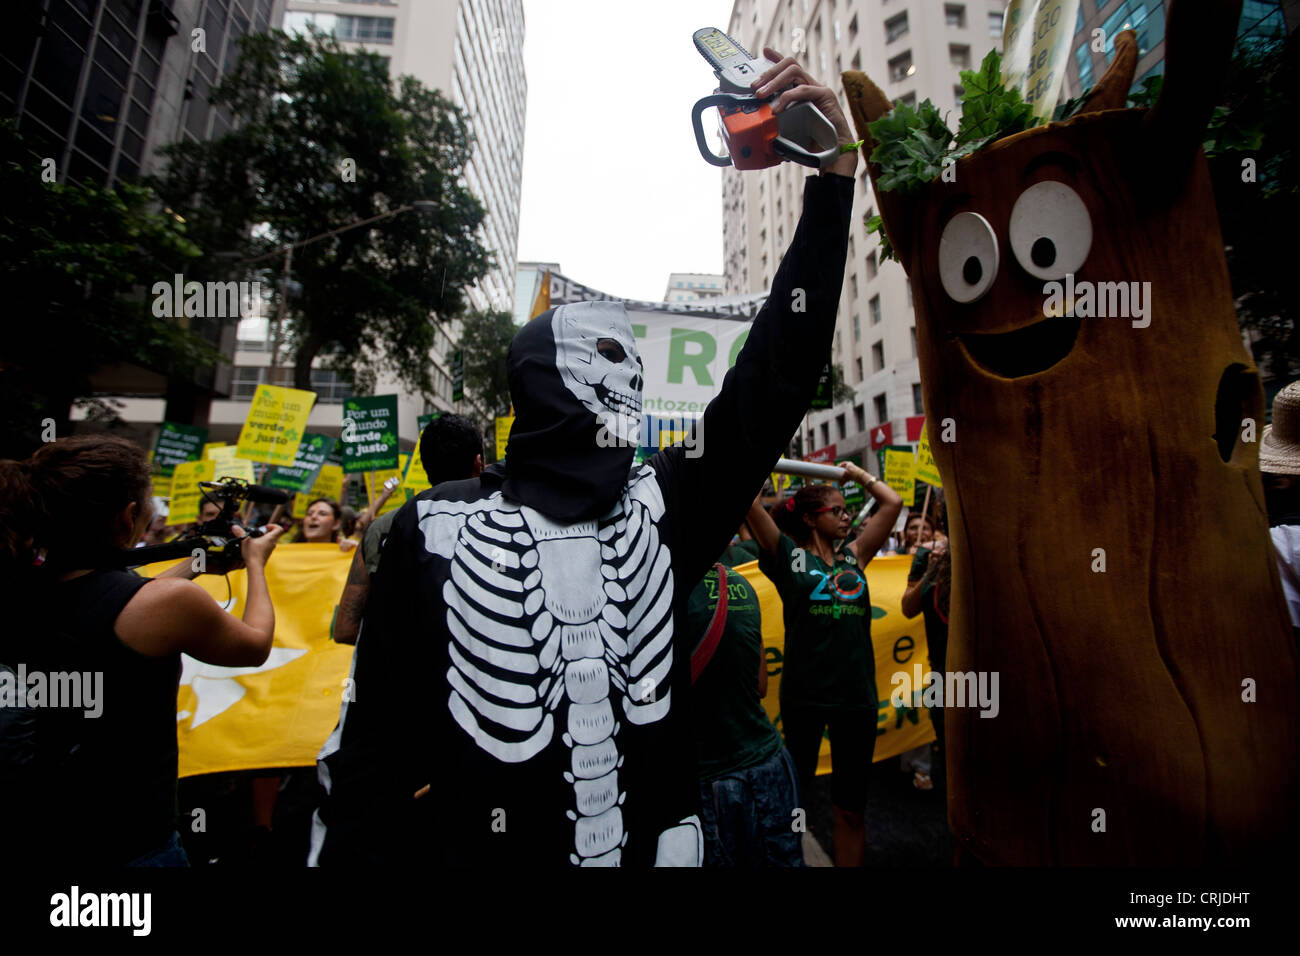 Greenpeace protest Deforestation Zero People's Summit at Rio+20 for Social and Environmental Justice Global - Stock Image